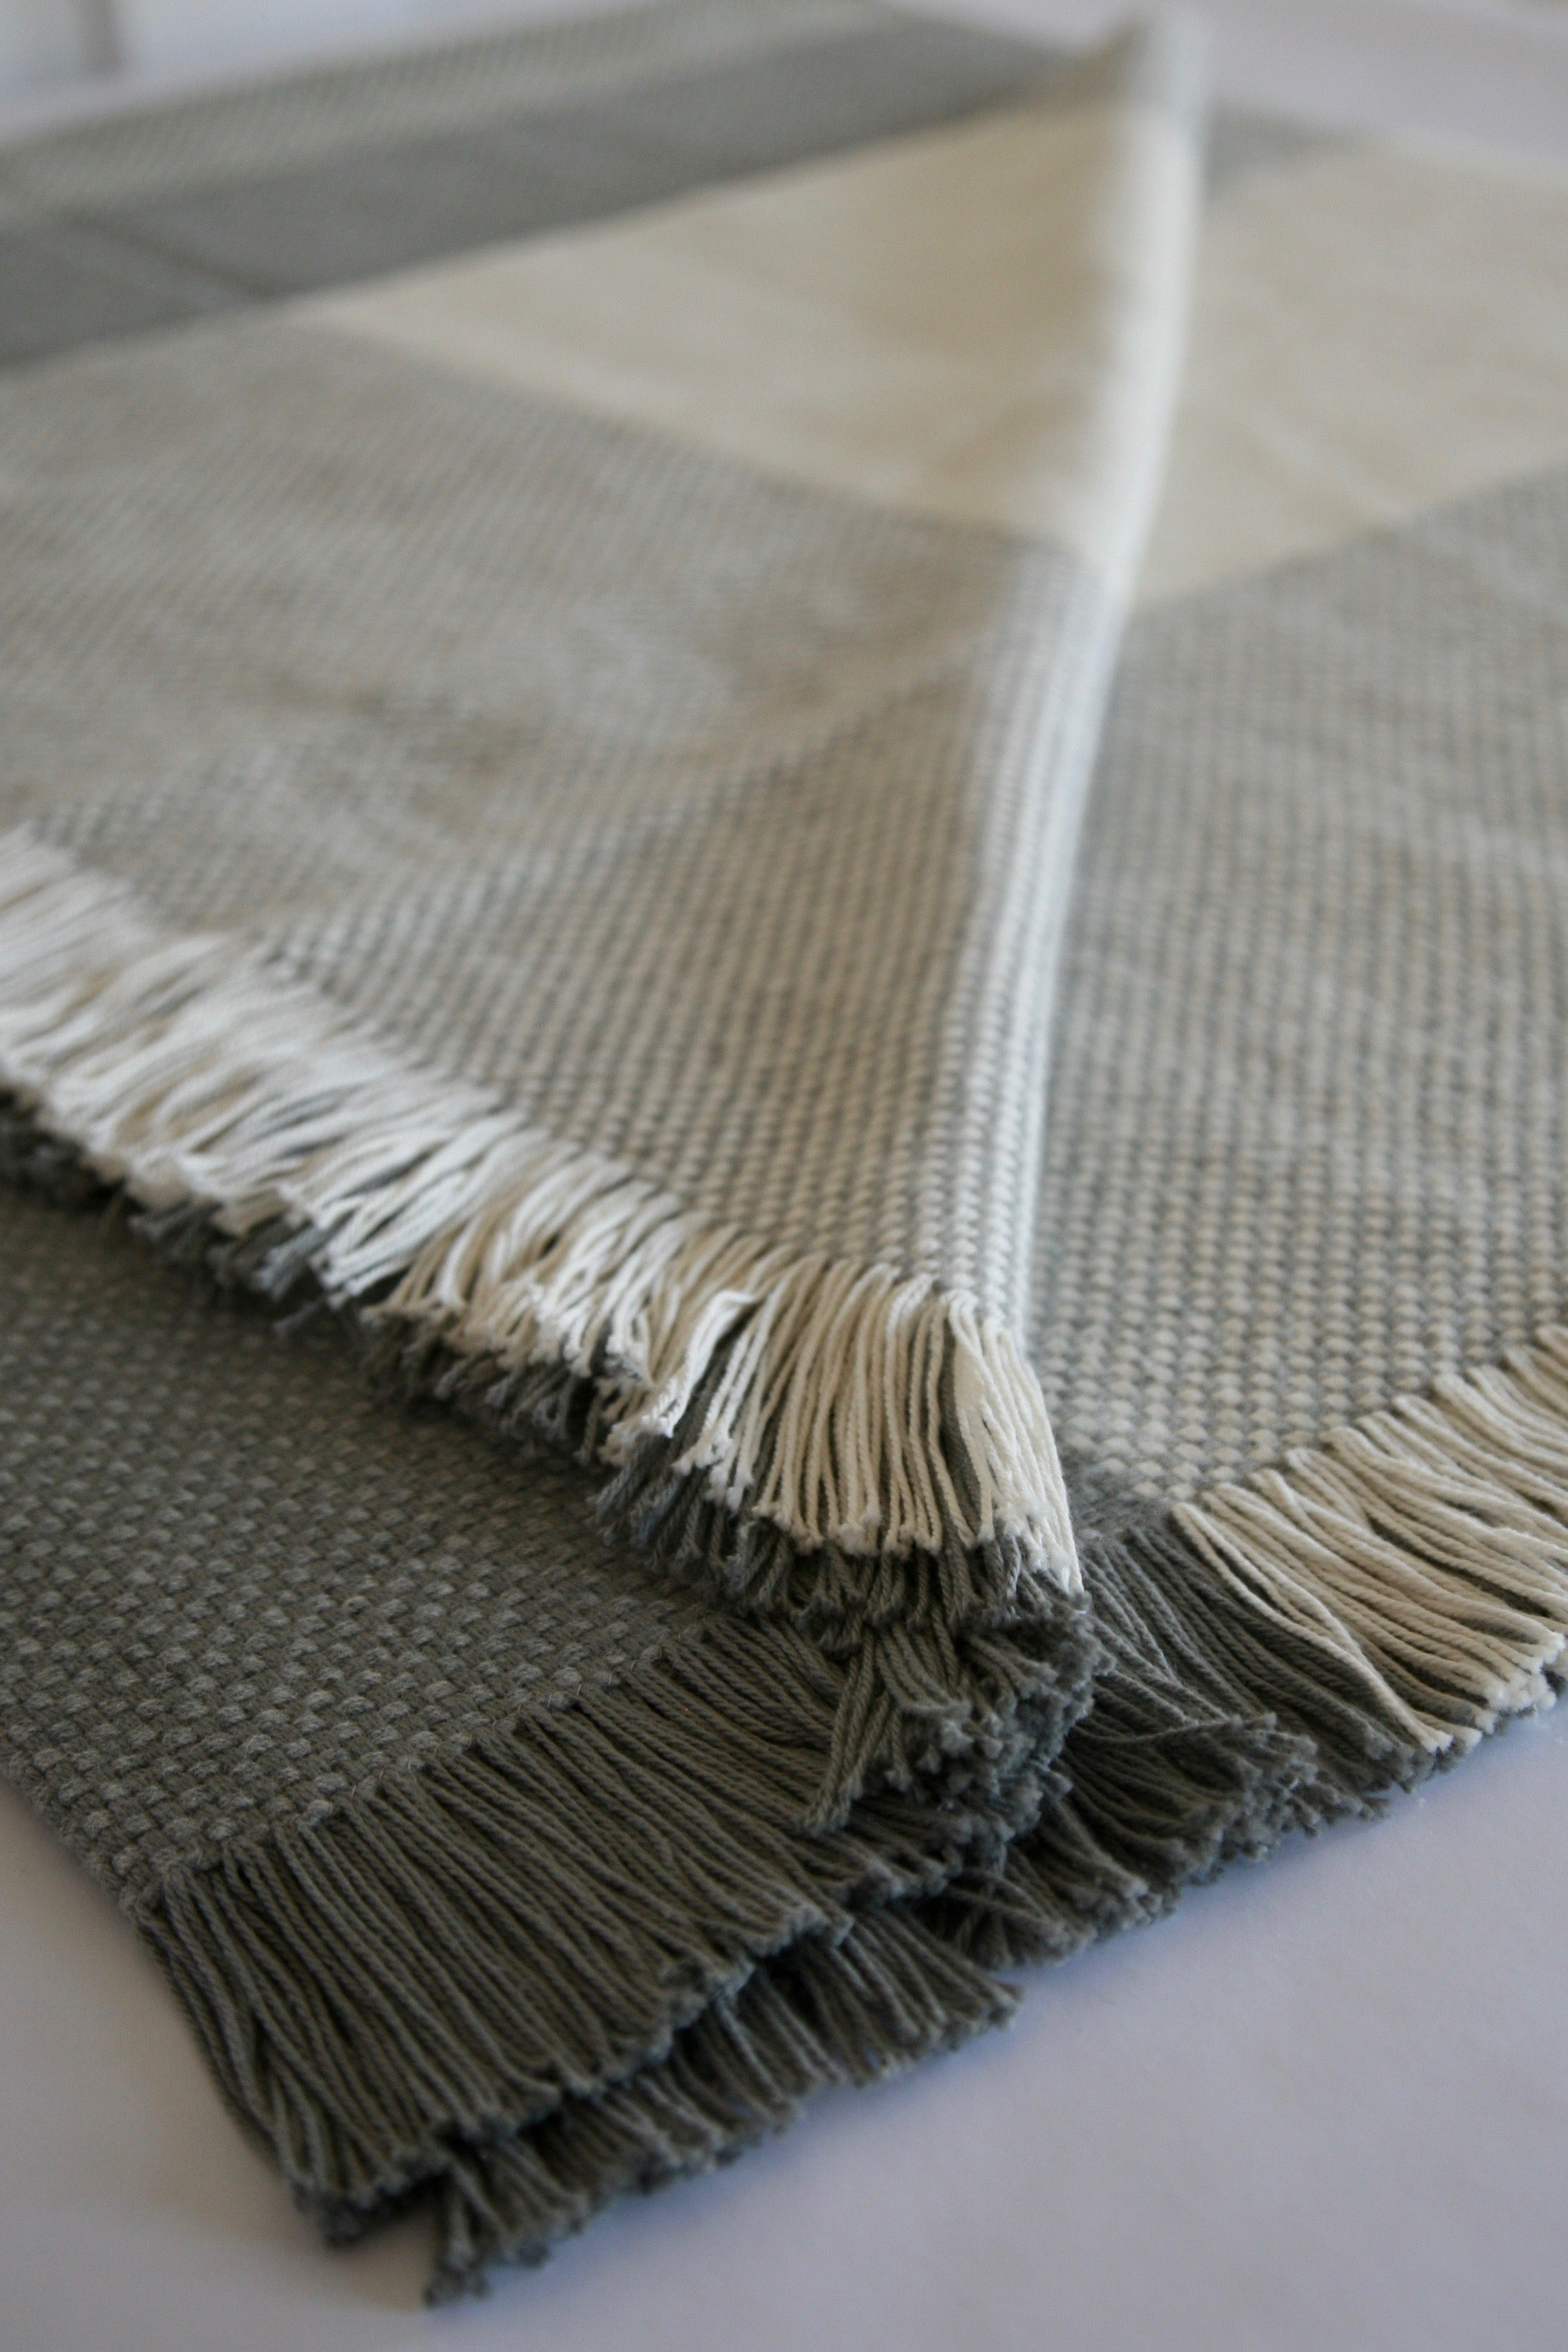 Wool/Cotton Colour Block Basketweave Blanket - Natural and Grey